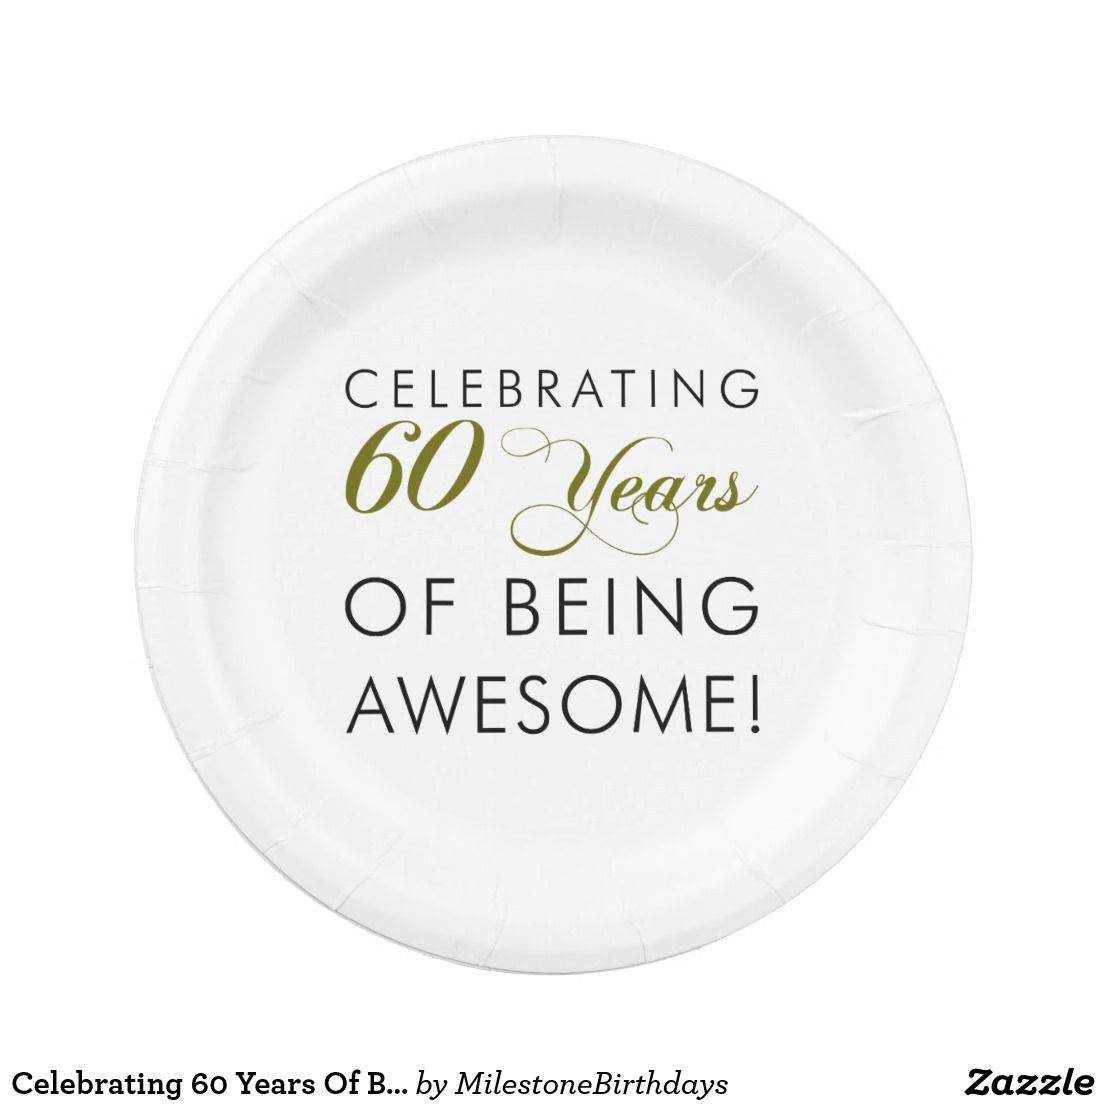 Celebrating 60 Years Of Being Awesome Paper Plate | Birthday party ideas